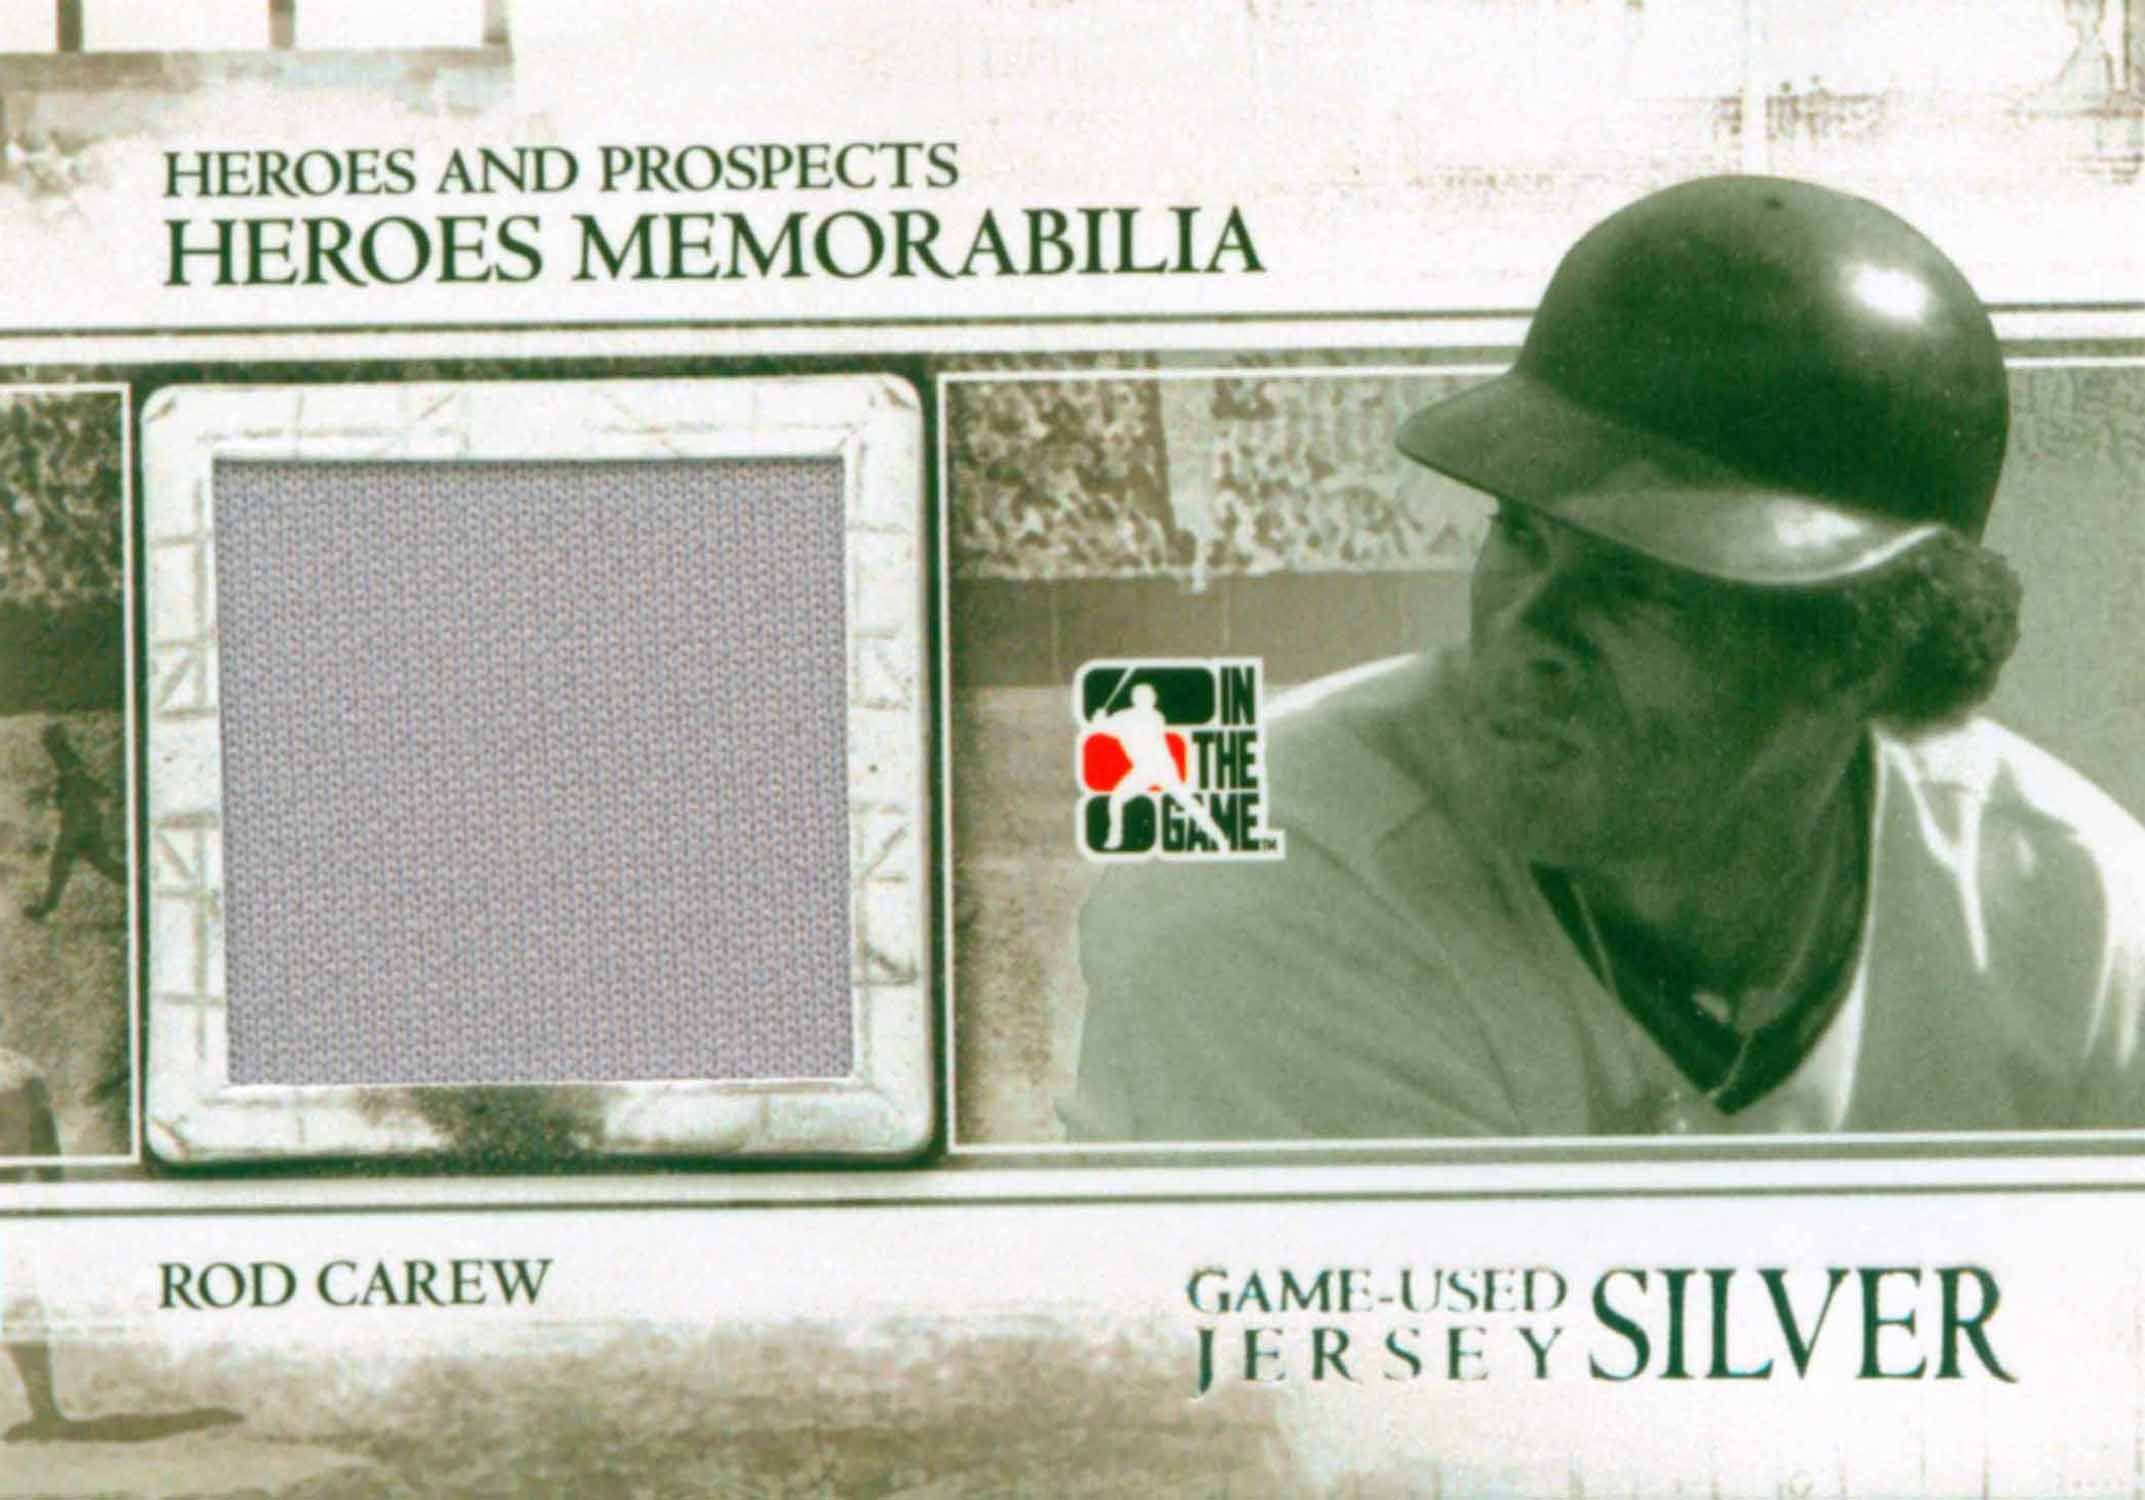 2011 In the Game Heroes and Prospects Heroes Jerseys Silver